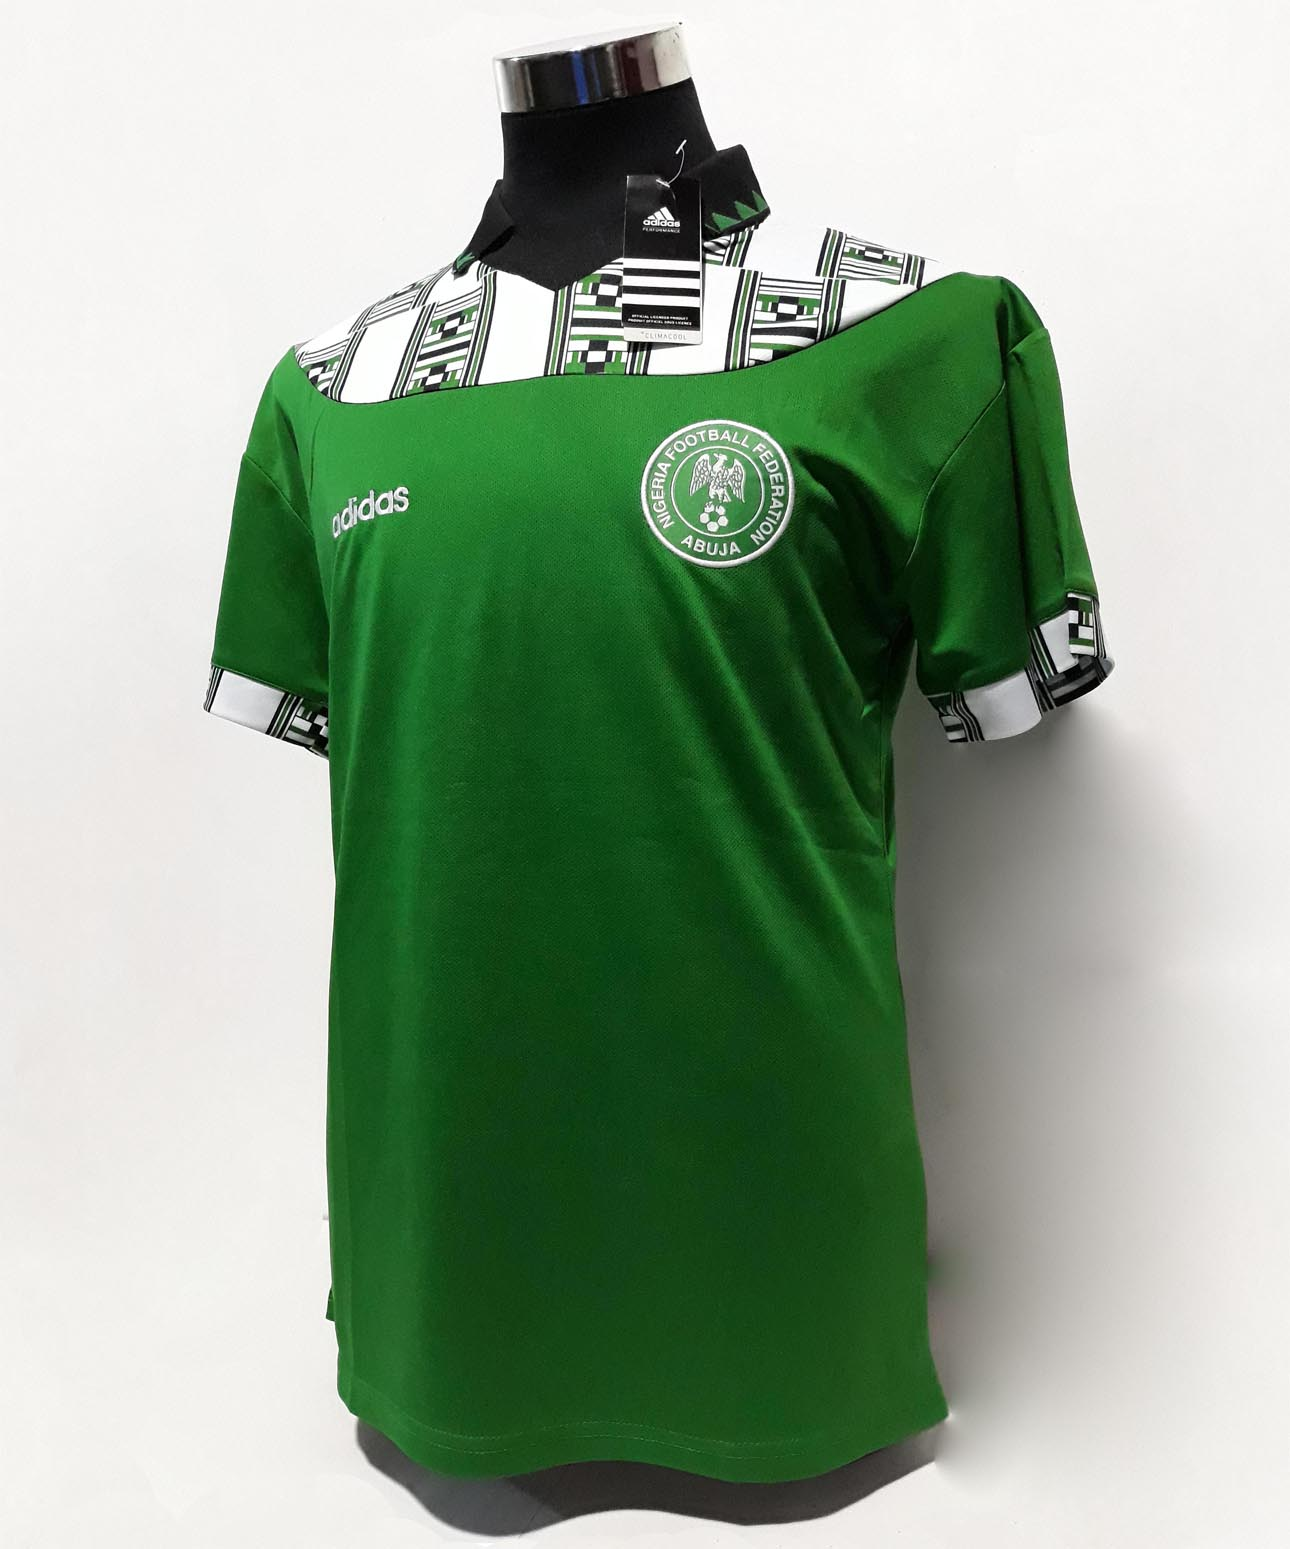 9c6747f5c7 Nigeria1994 World Cup Away Jersey. Nigeria1994 ...